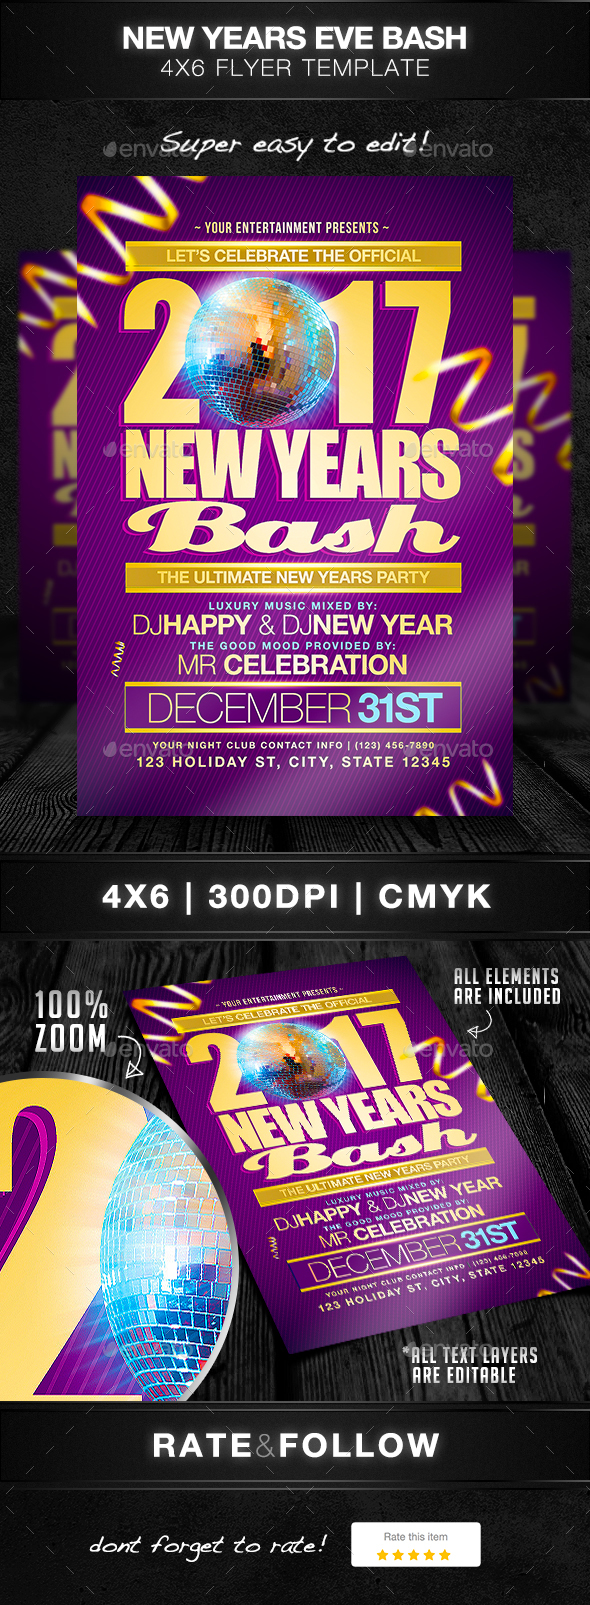 New Years Bash Flyer Template - Holidays Events